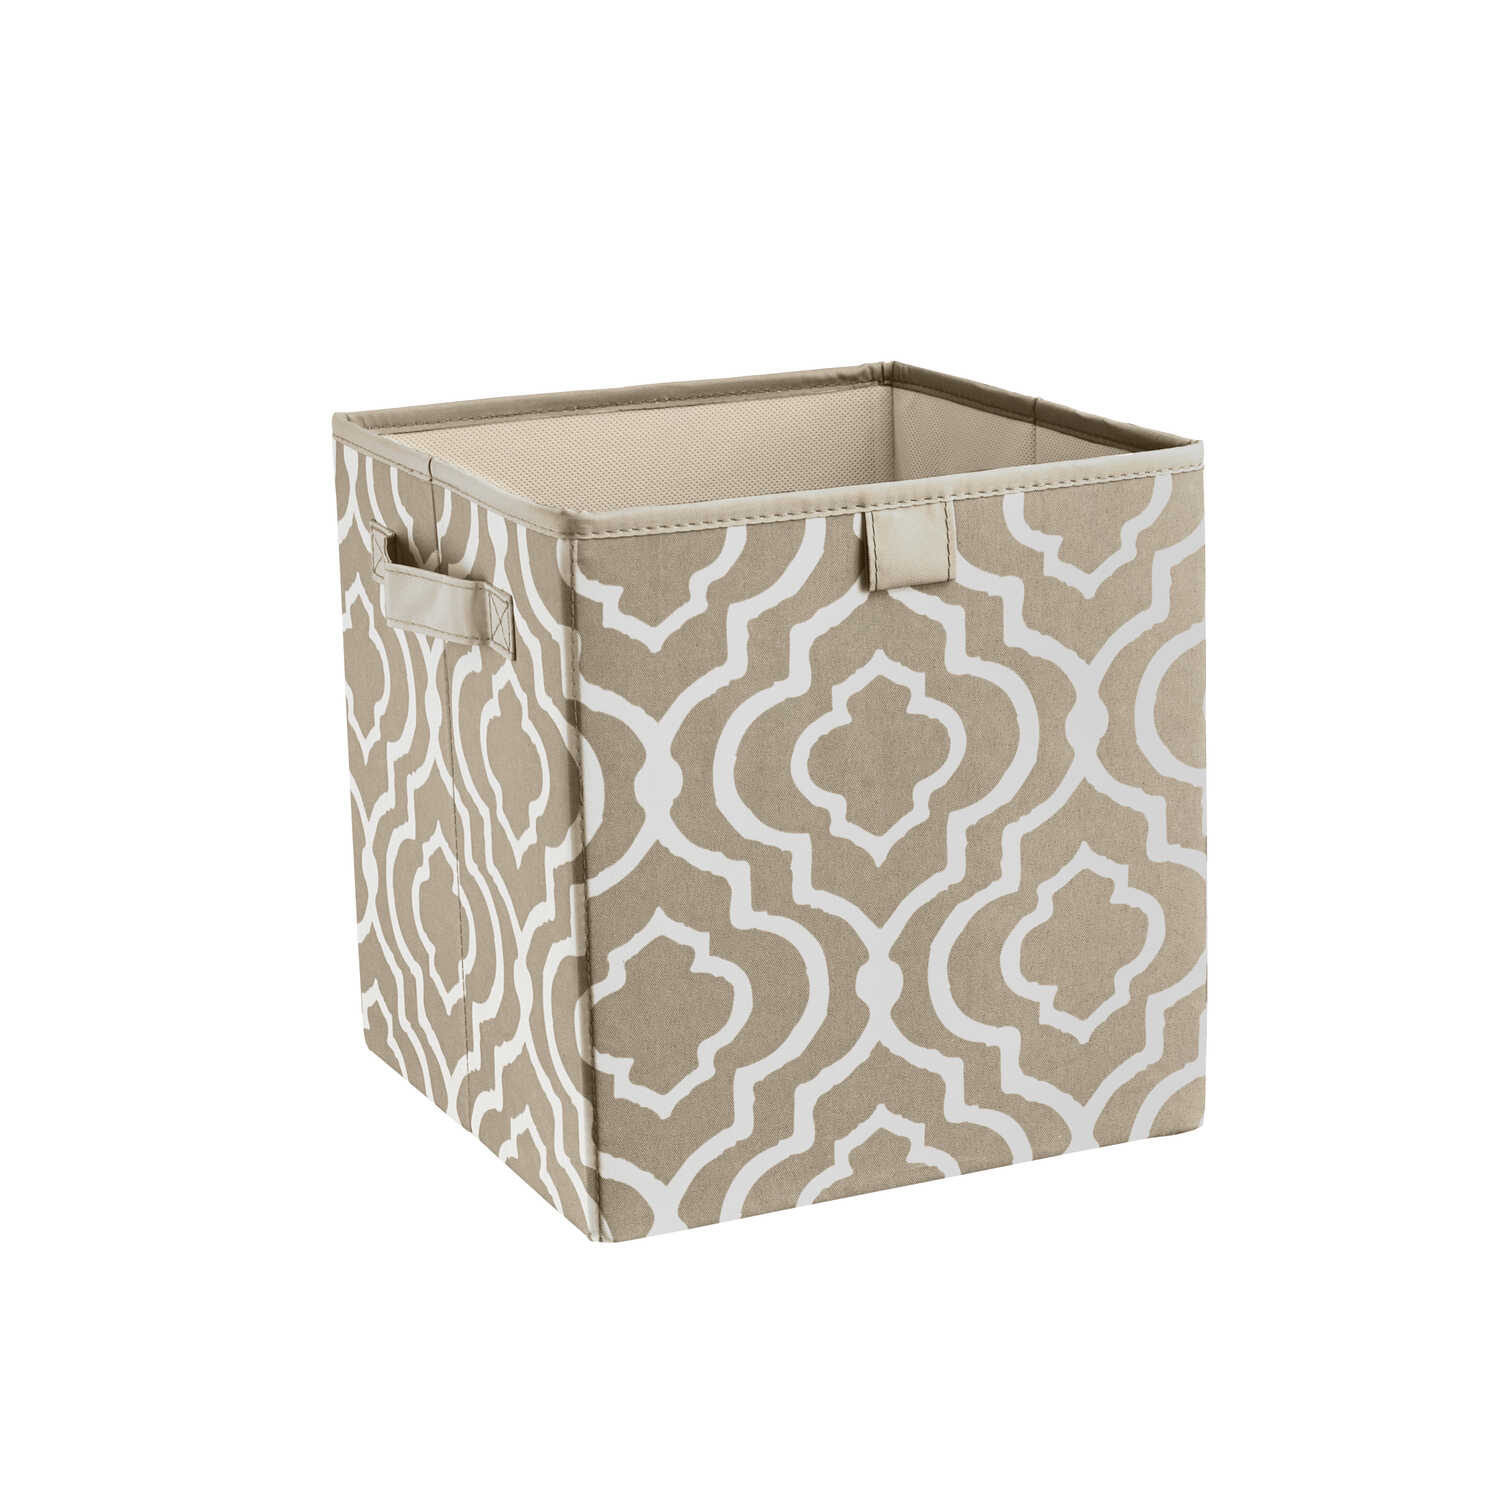 ClosetMaid  11 in. H x 10.5 in. W x 10.5 in. D Fabric Storage Bin